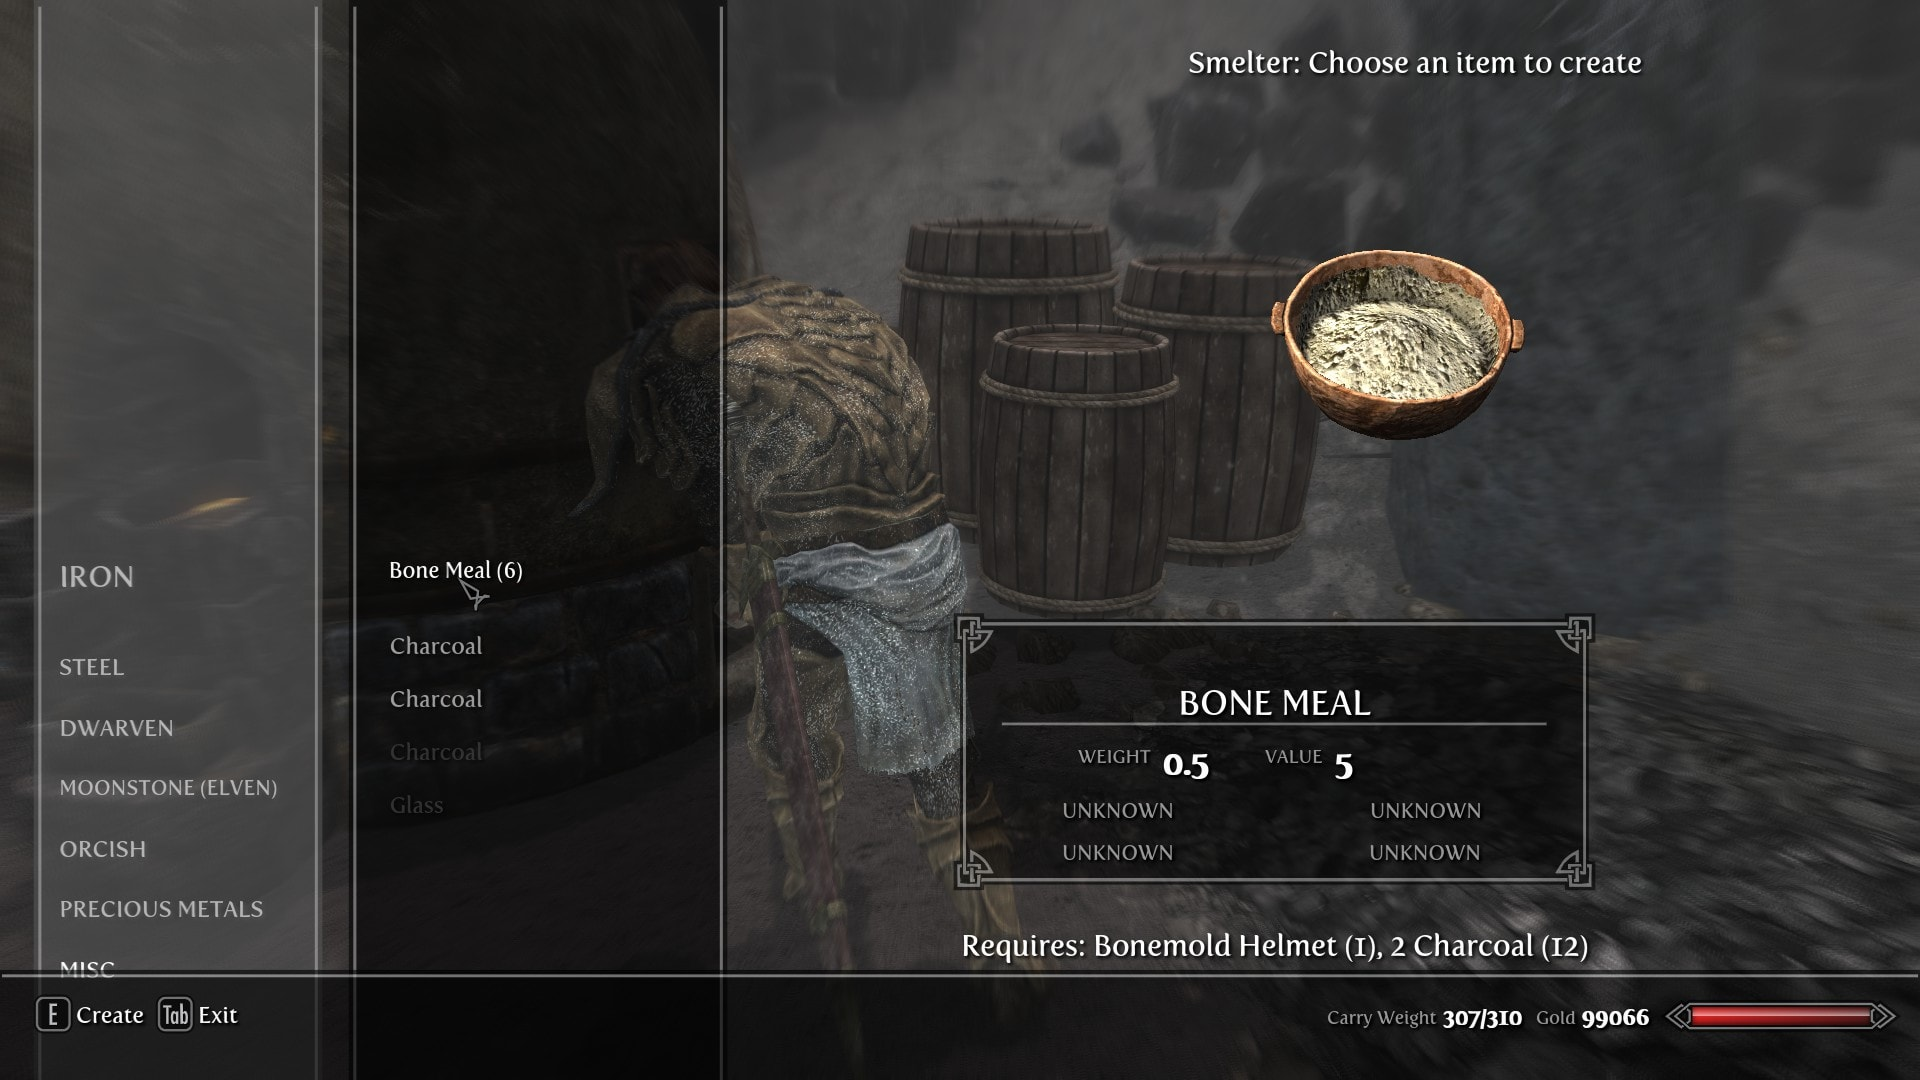 Clutter of Skyrim - Smithing アイテム - 世界 - Skyrim Mod